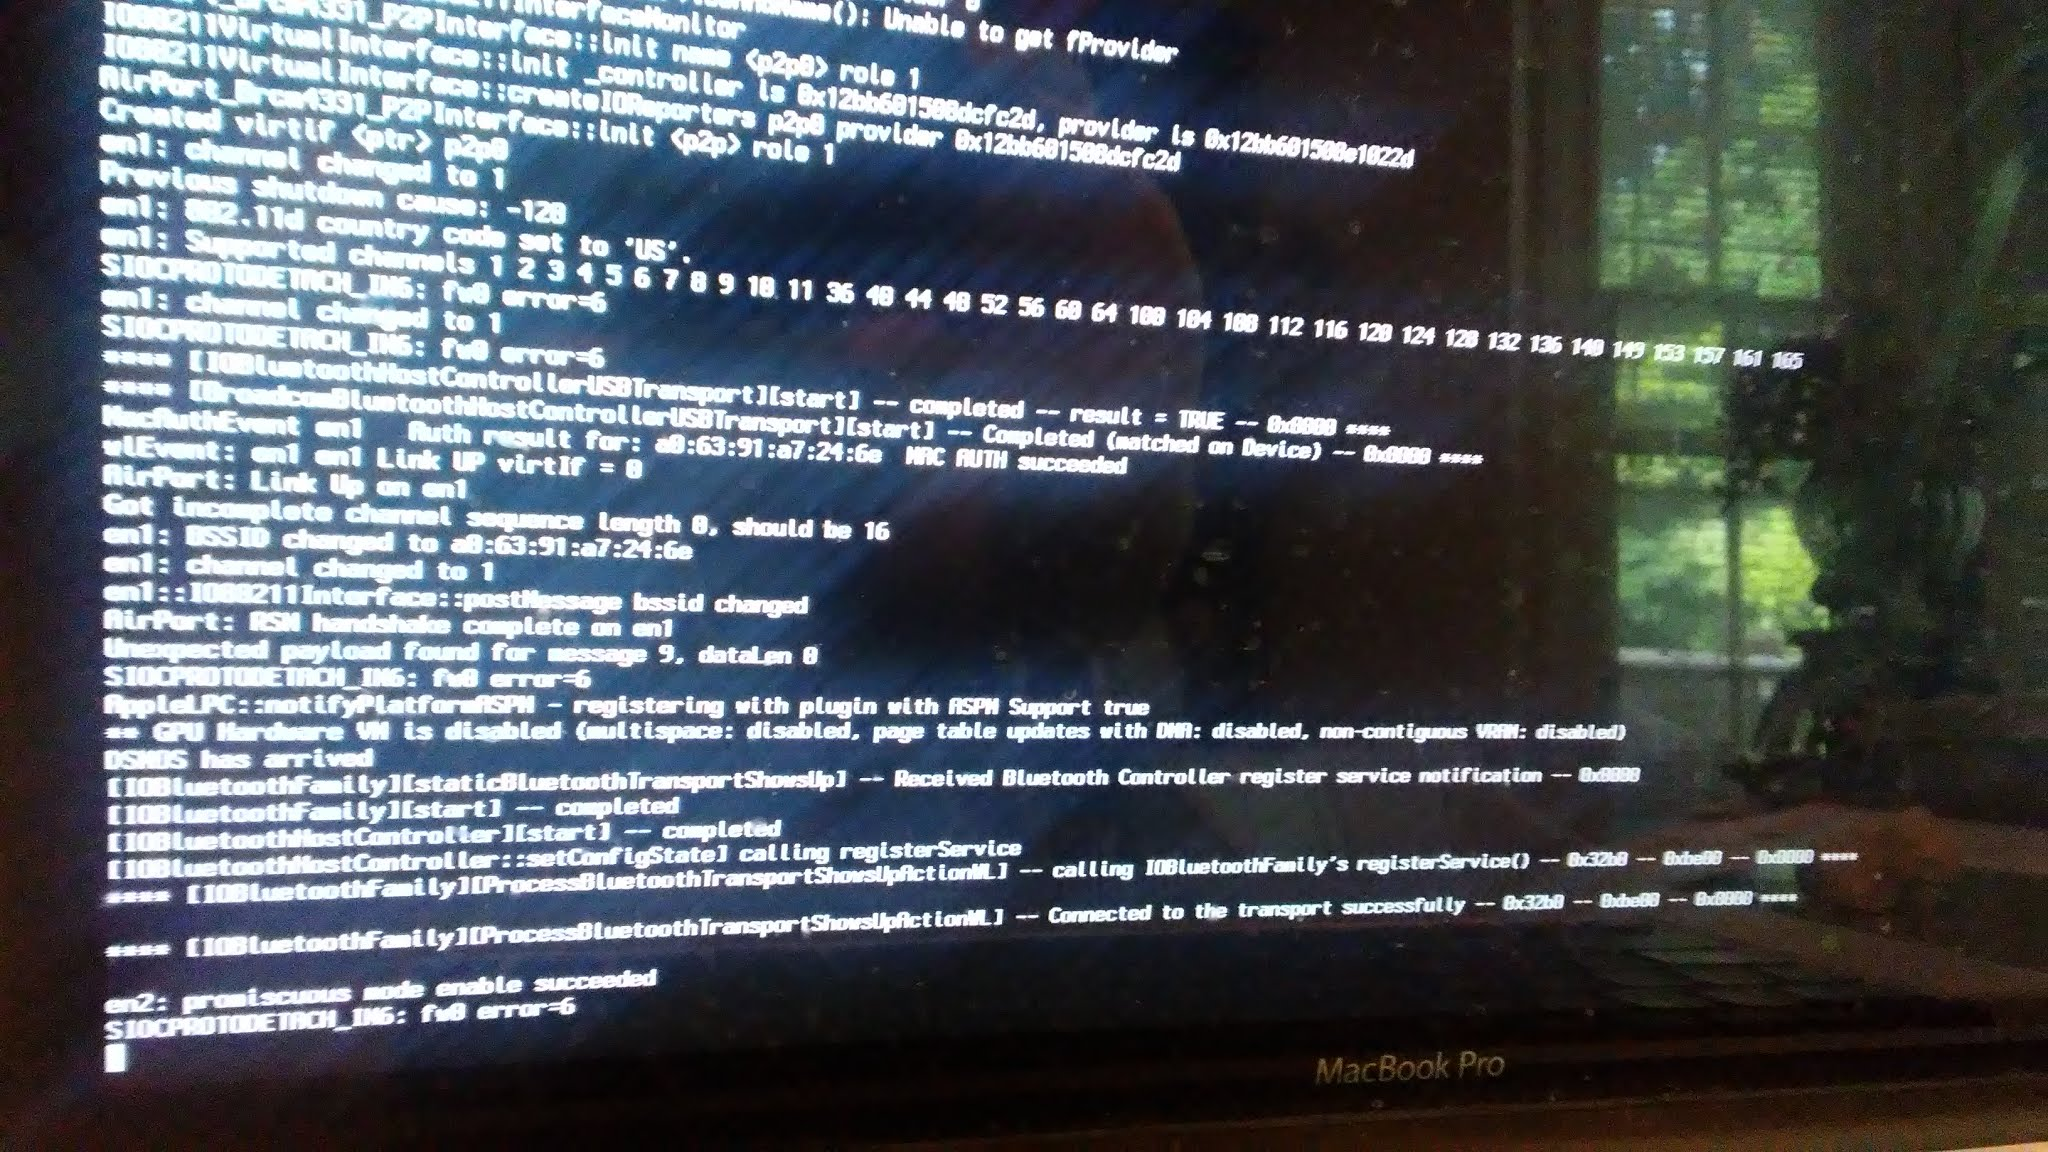 Resolved - Force 2011 MacBook Pro 8,2 with failed AMD GPU to ALWAYS